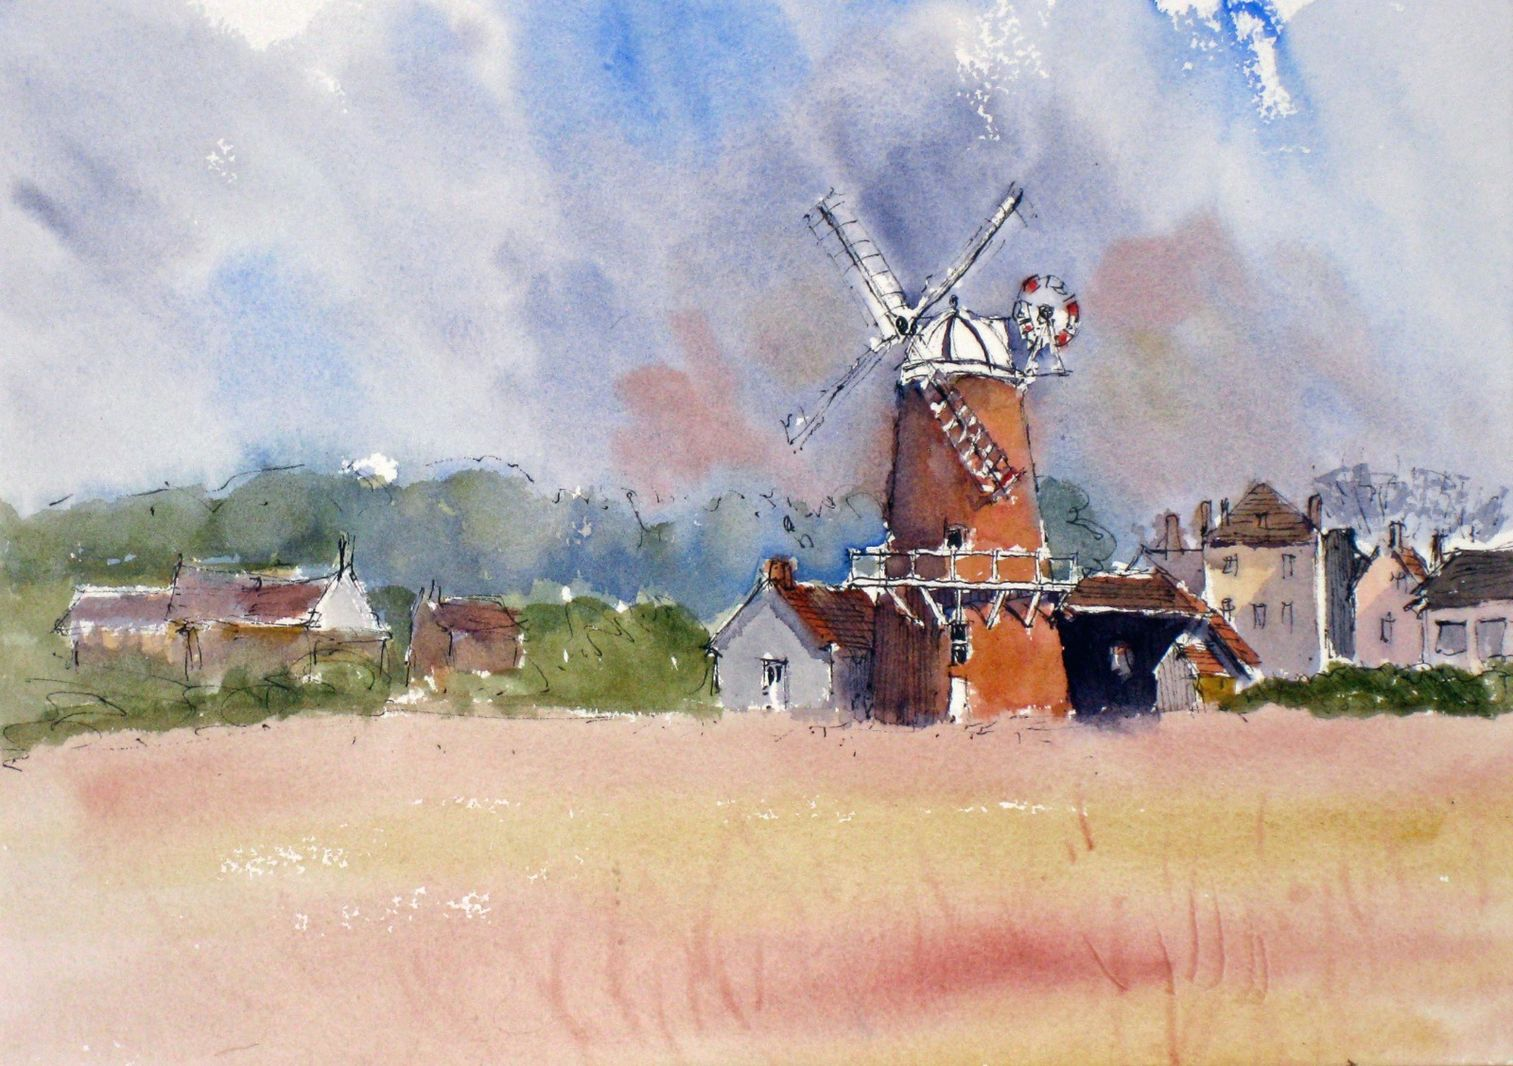 Windmil, Holt, Norfolk